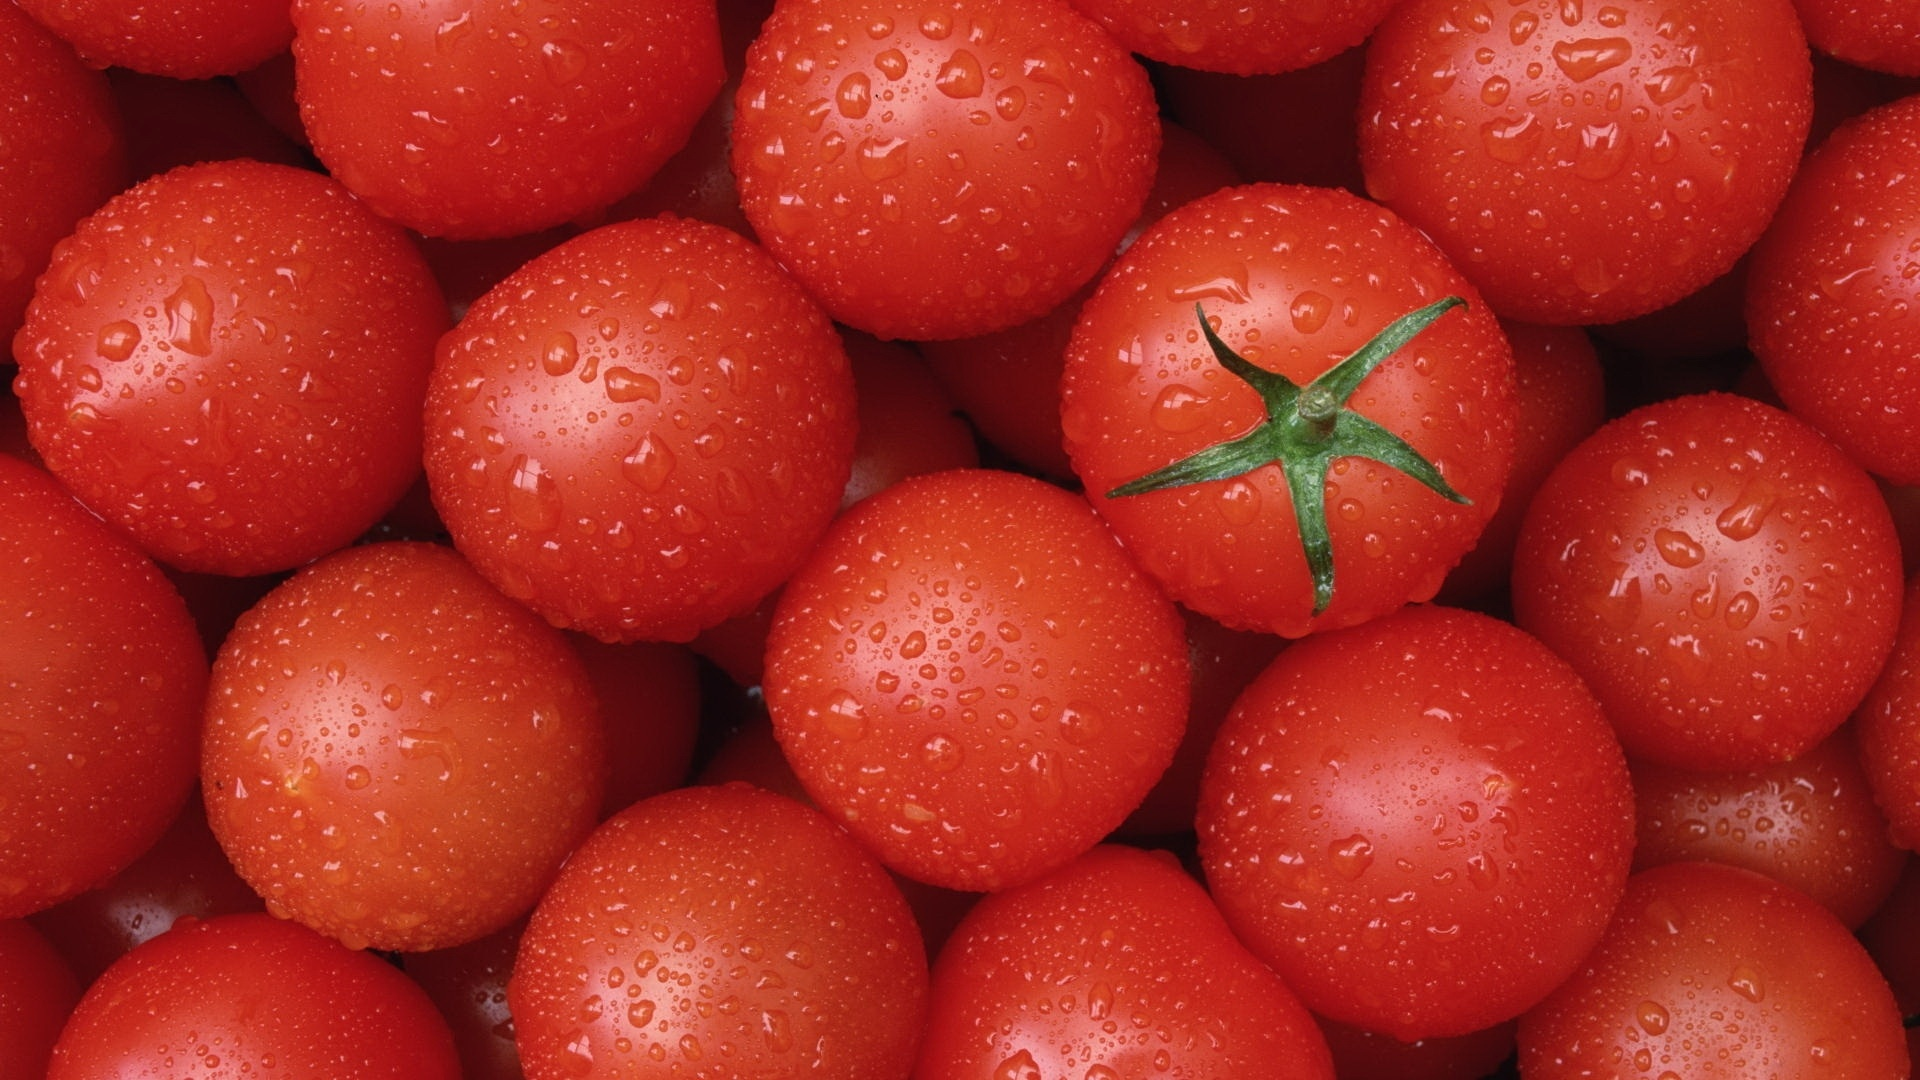 Tomatoes Wallpaper